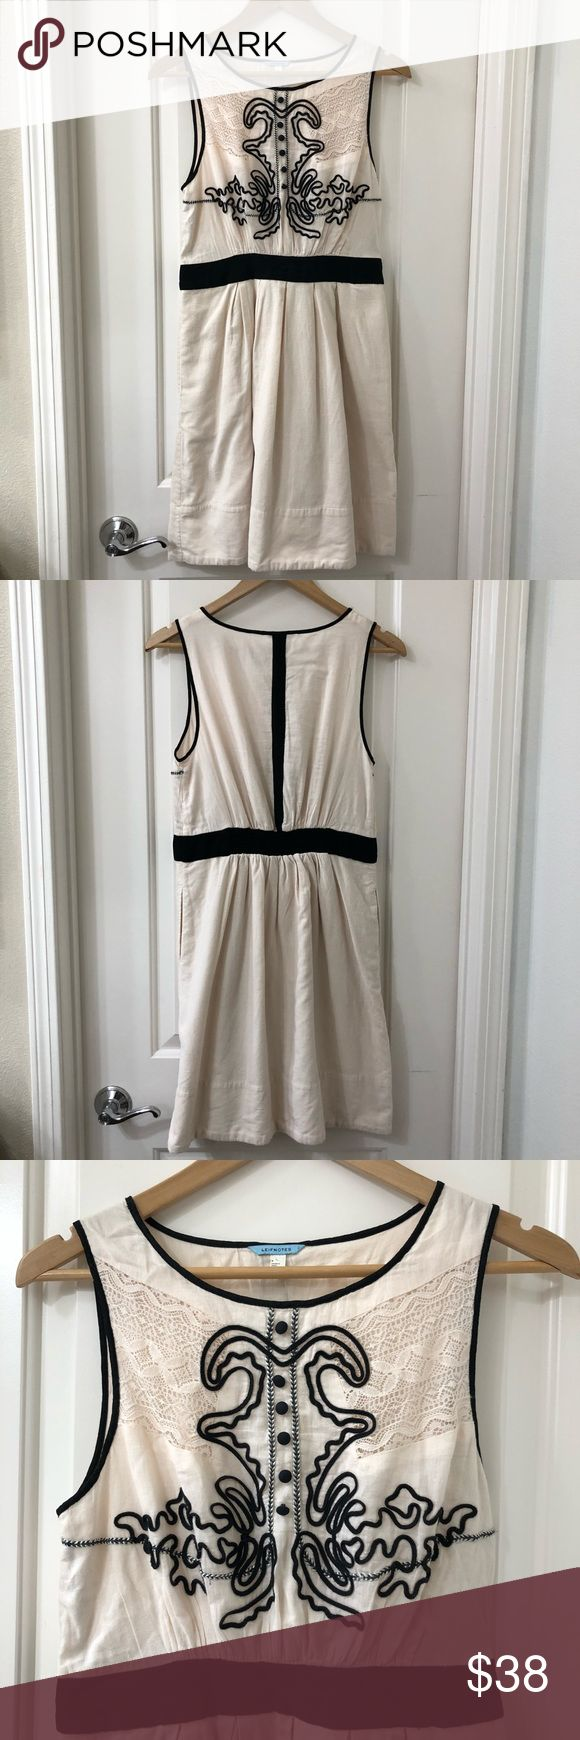 "Anthropologie Leifnotes Open Air Theater Dress Anthropologie Leifnotes Open Air Theater Dress. Size 6. Bottom skirt is corduroy with pockets. Waistband in the back has elastic for the perfect fit. Beautiful detailing.  Armpit to armpit: 15.5"" Length: 35.5"" Anthropologie Dresses Mini"